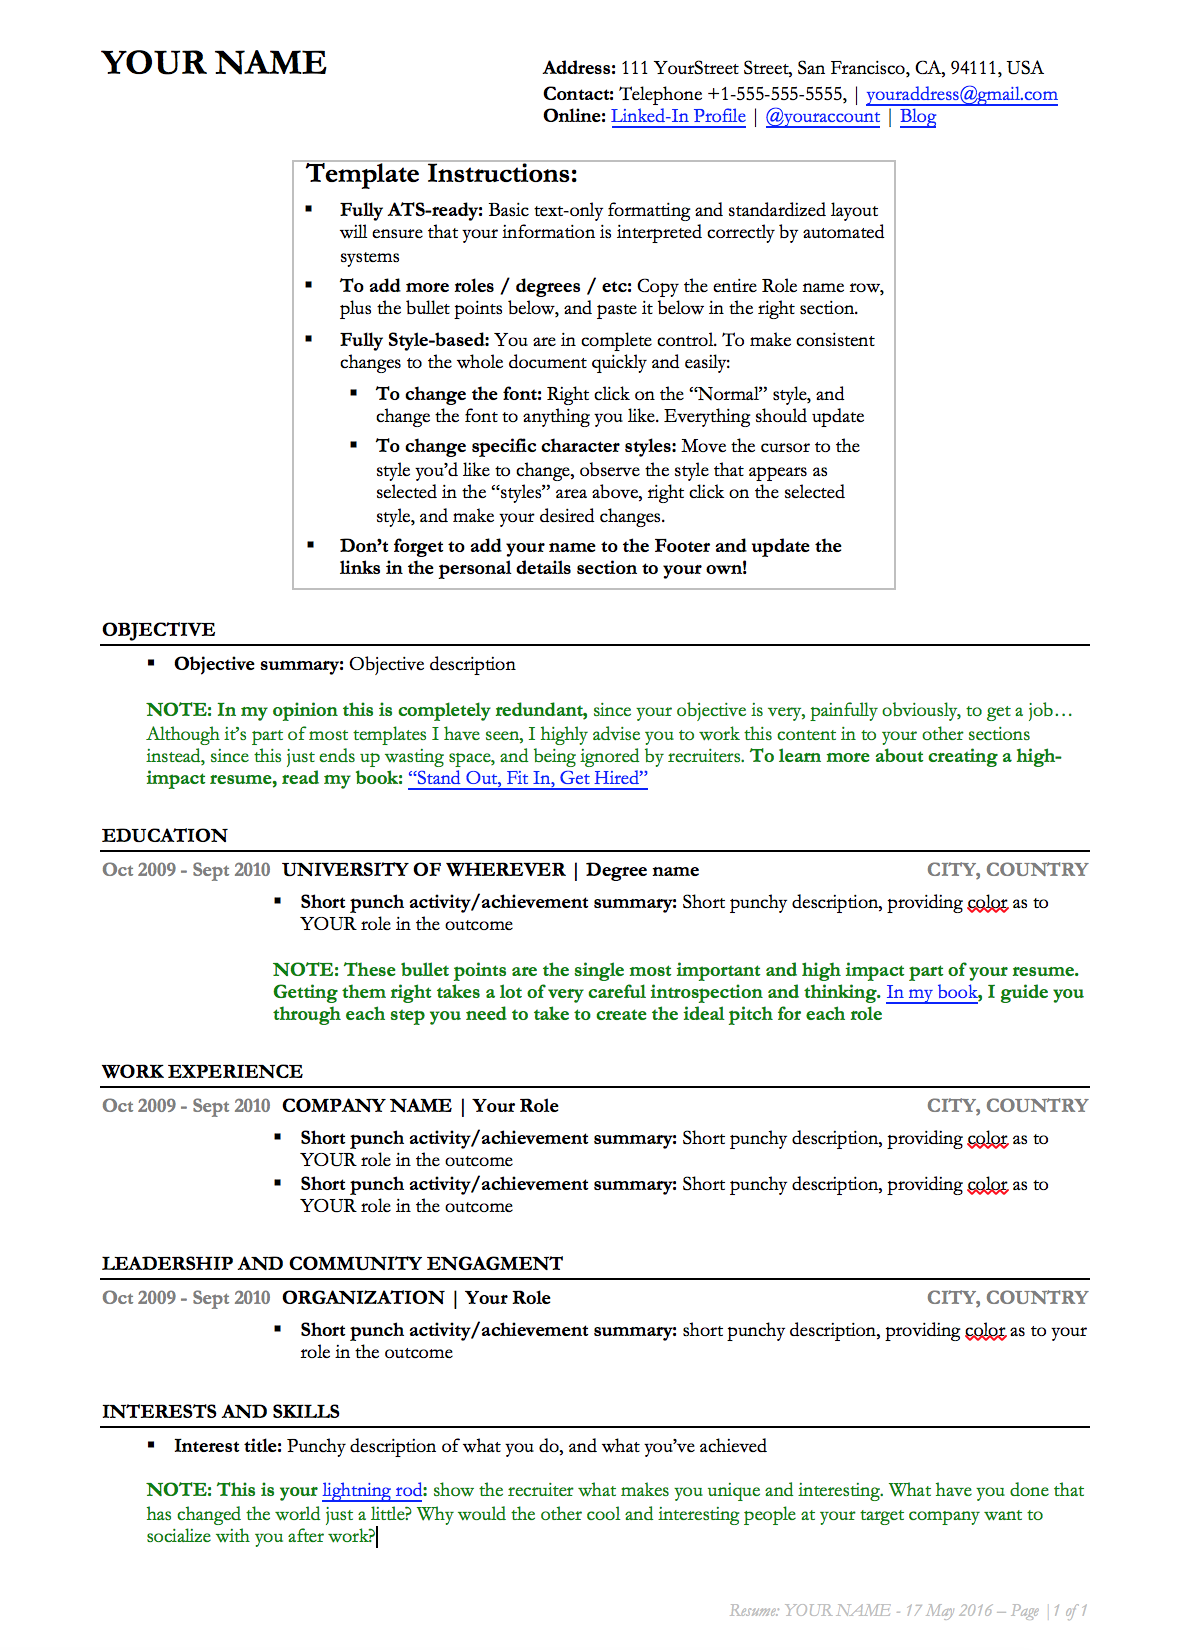 Resume Synonyms For Assist - Best Resume Examples